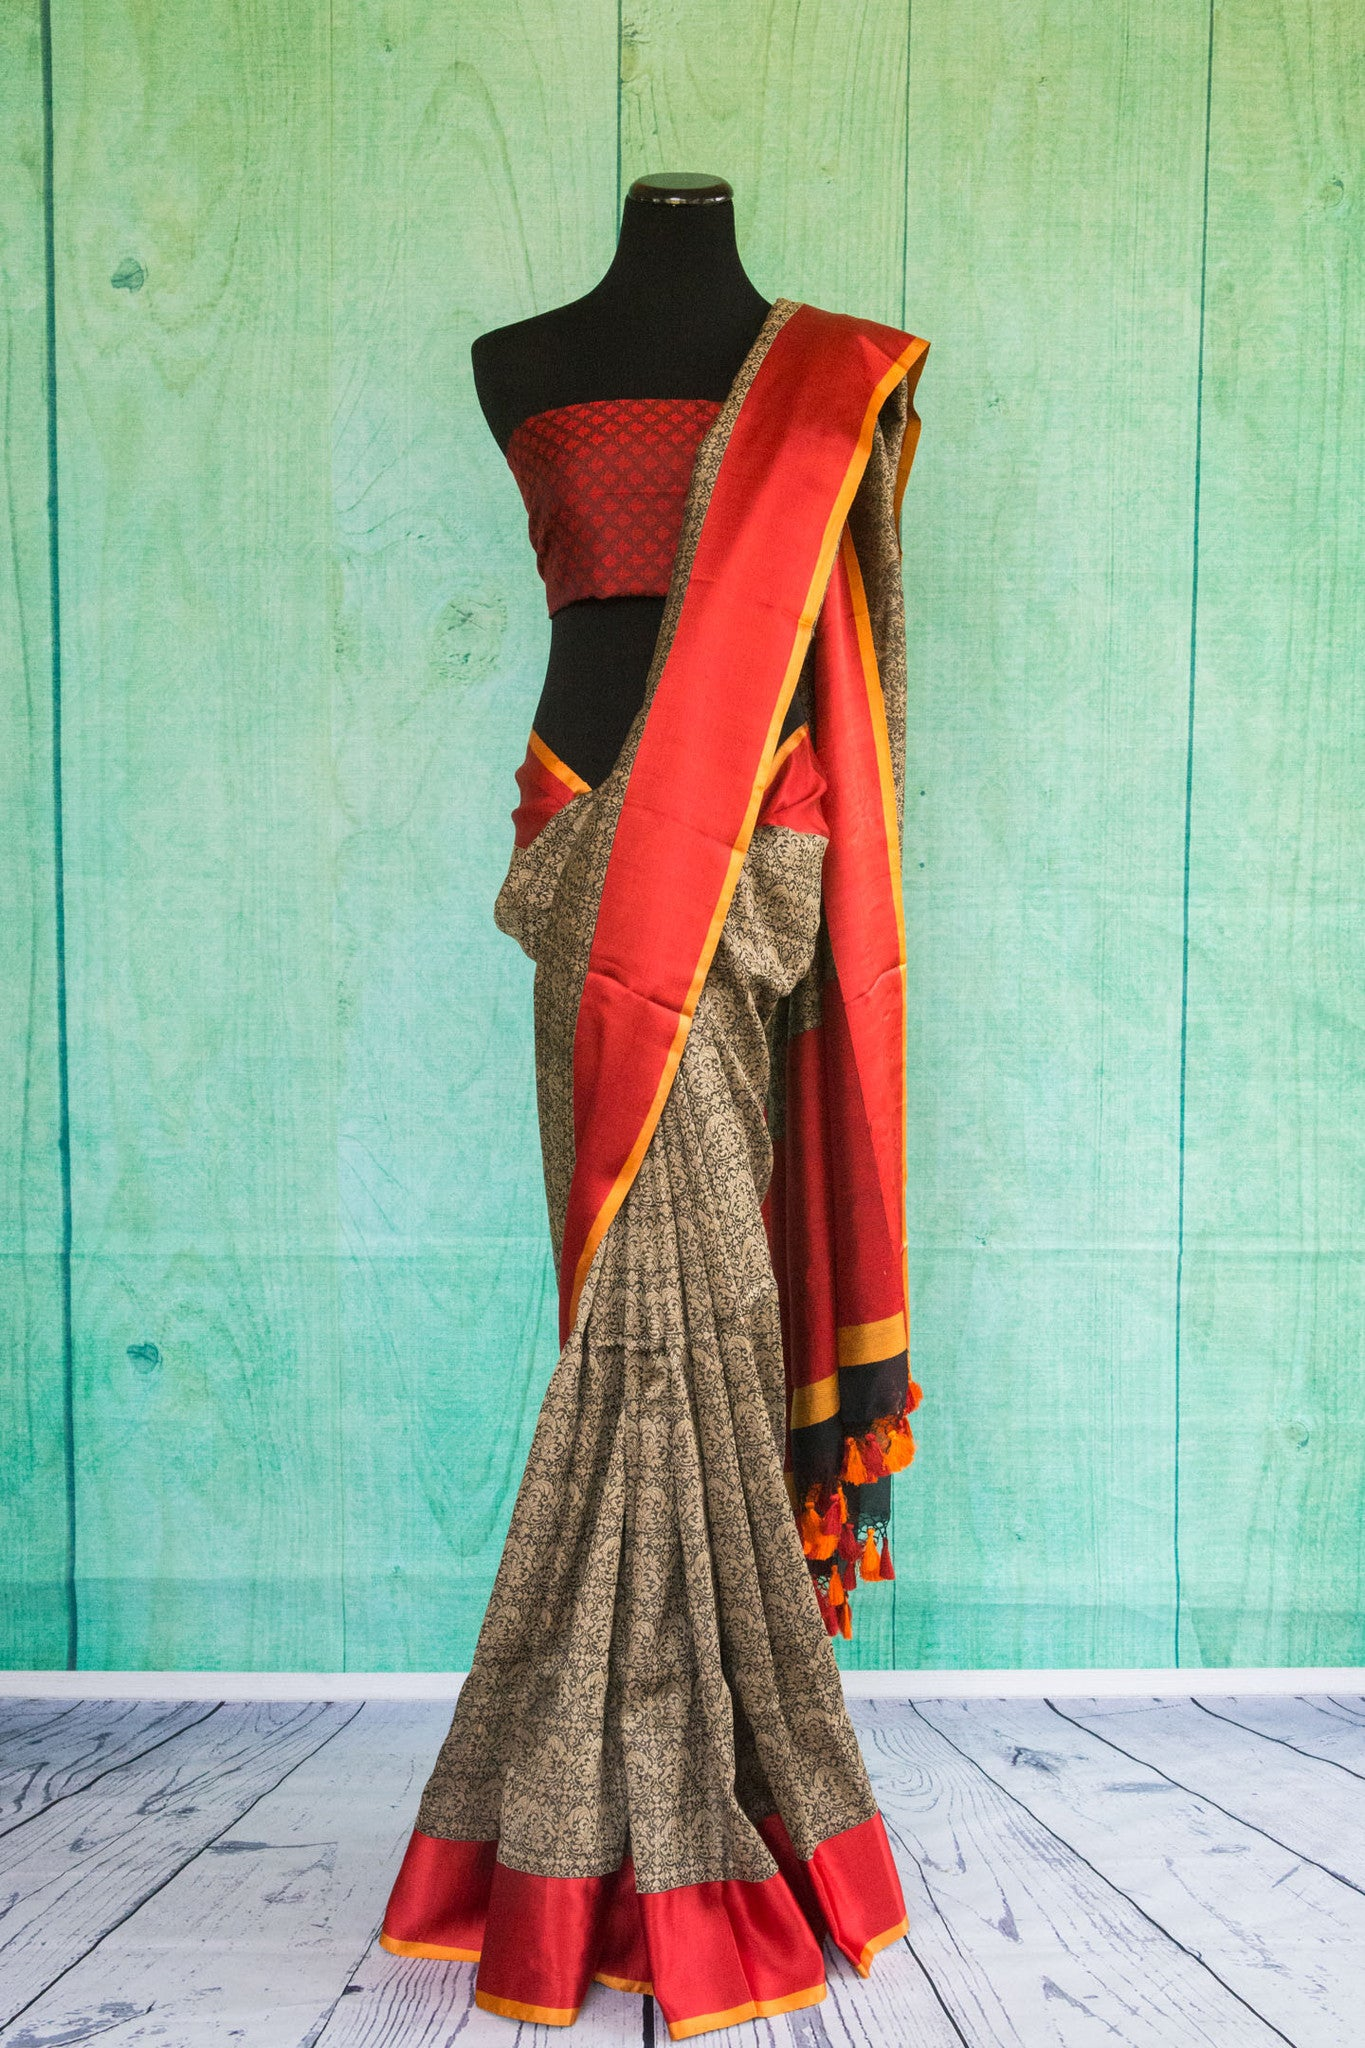 90c123 Traditional grey and red woven saree from Banaras. The Indian saree online in USA, with red border and red blouse is an evergreen pick for your Indian clothing collection.